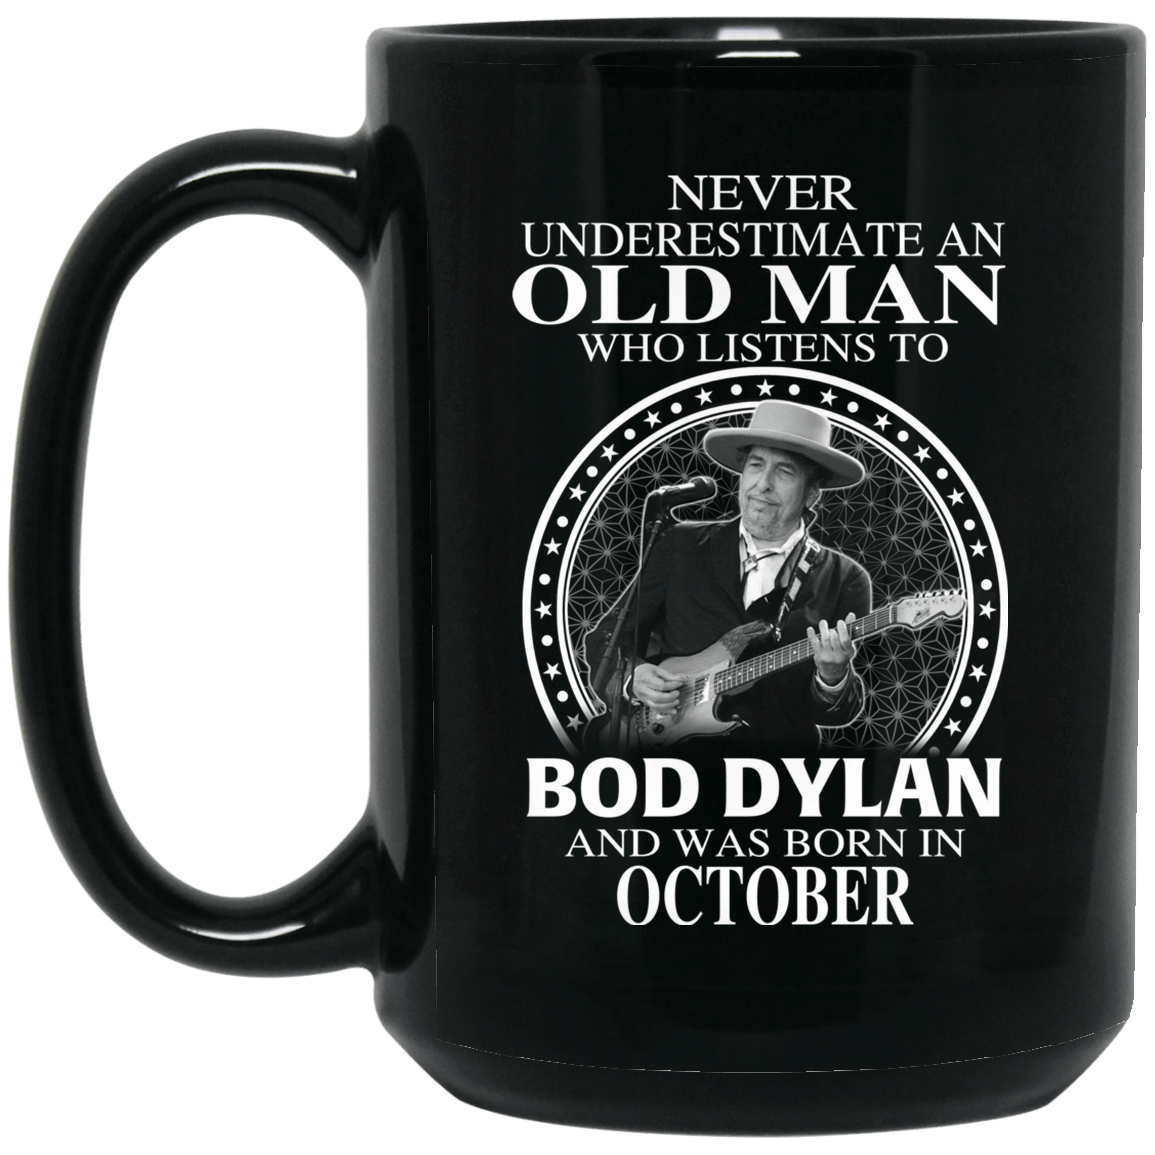 An Old Man Who Listens To Bob Dylan And Was Born In October Mug 1066-10182-76154378-49311 - Tee Ript